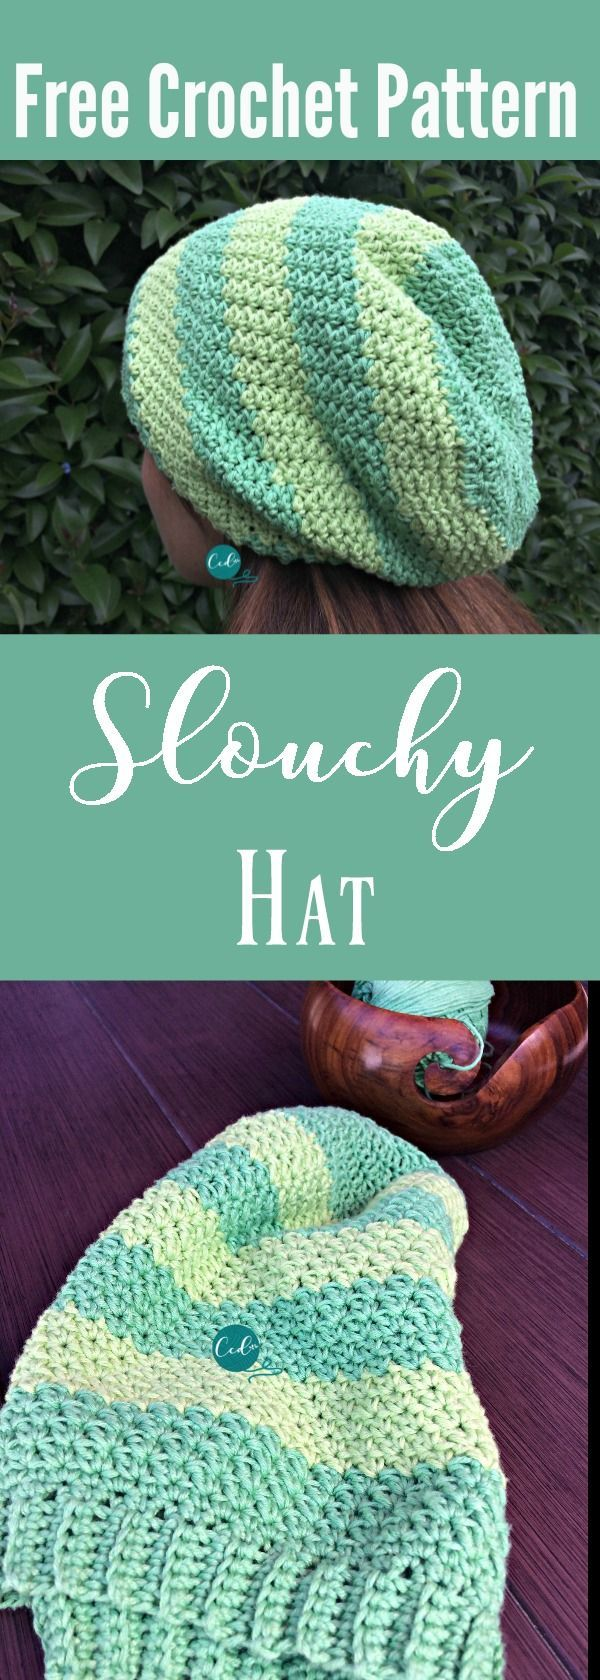 Striped Slouchy Hat Free Crochet Pattern | Gorros, Patrones libres ...